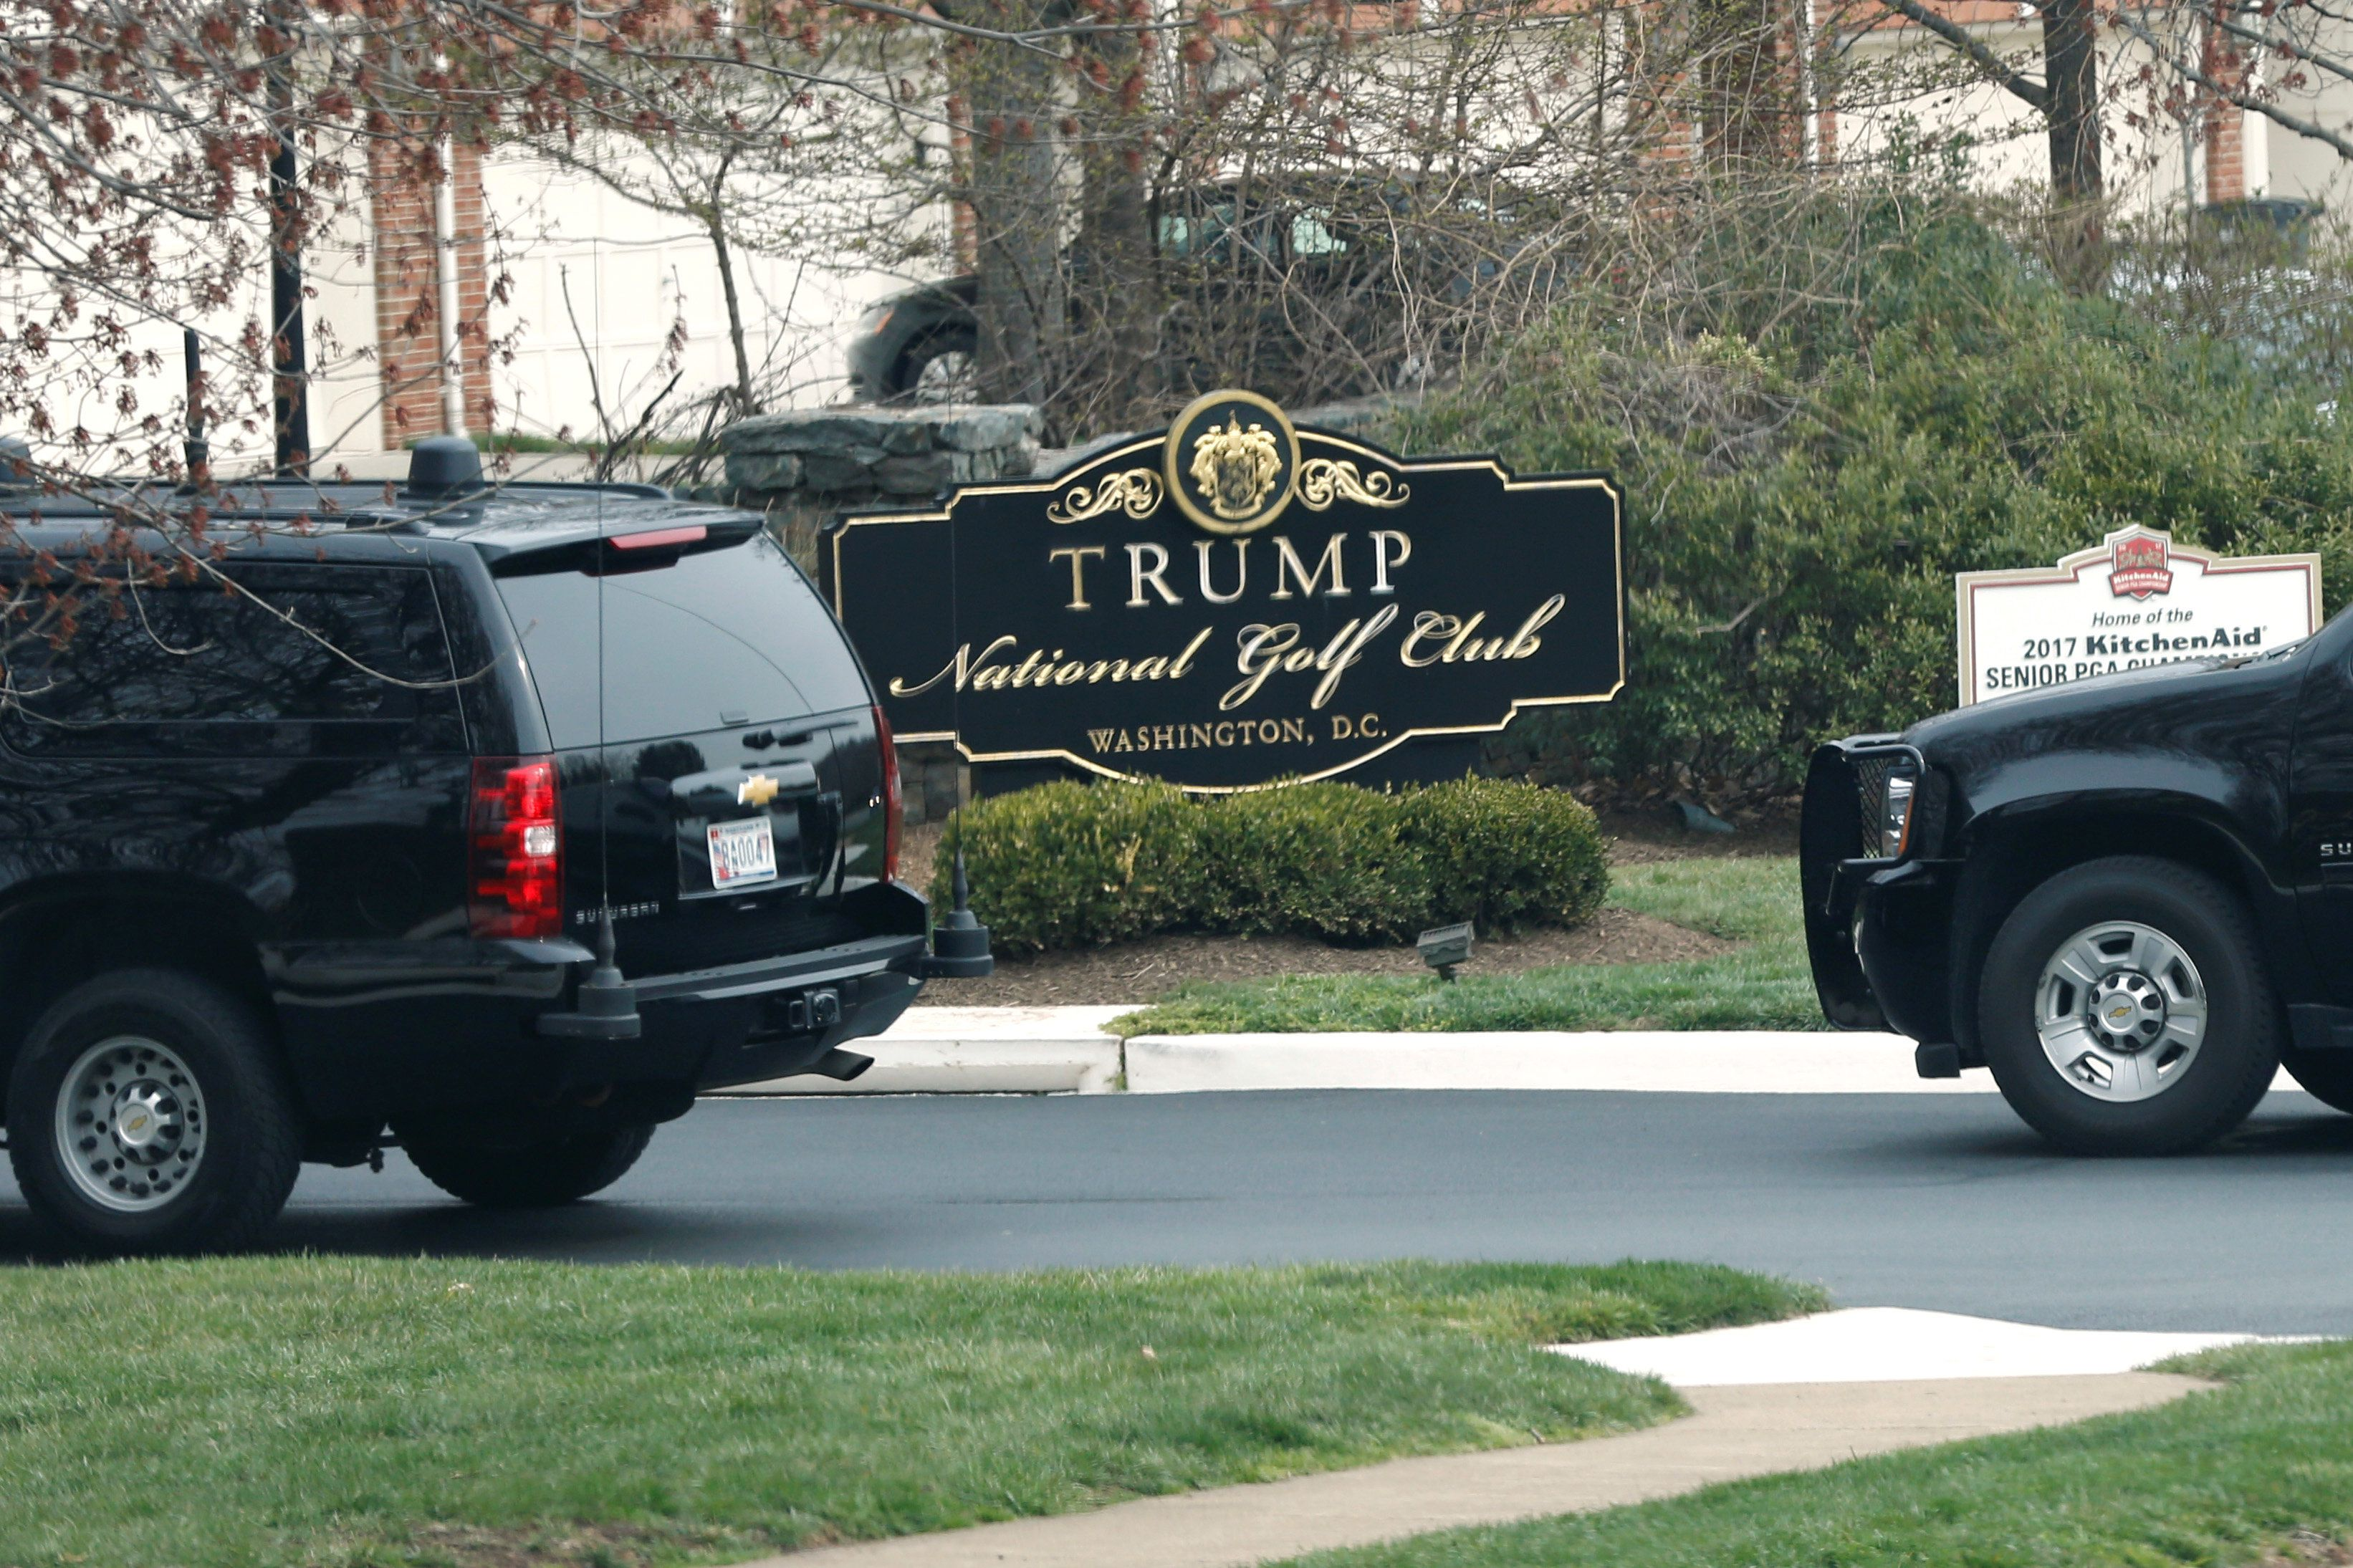 Trump Heads To Golf Club For the Twelfth Time In 9-Week